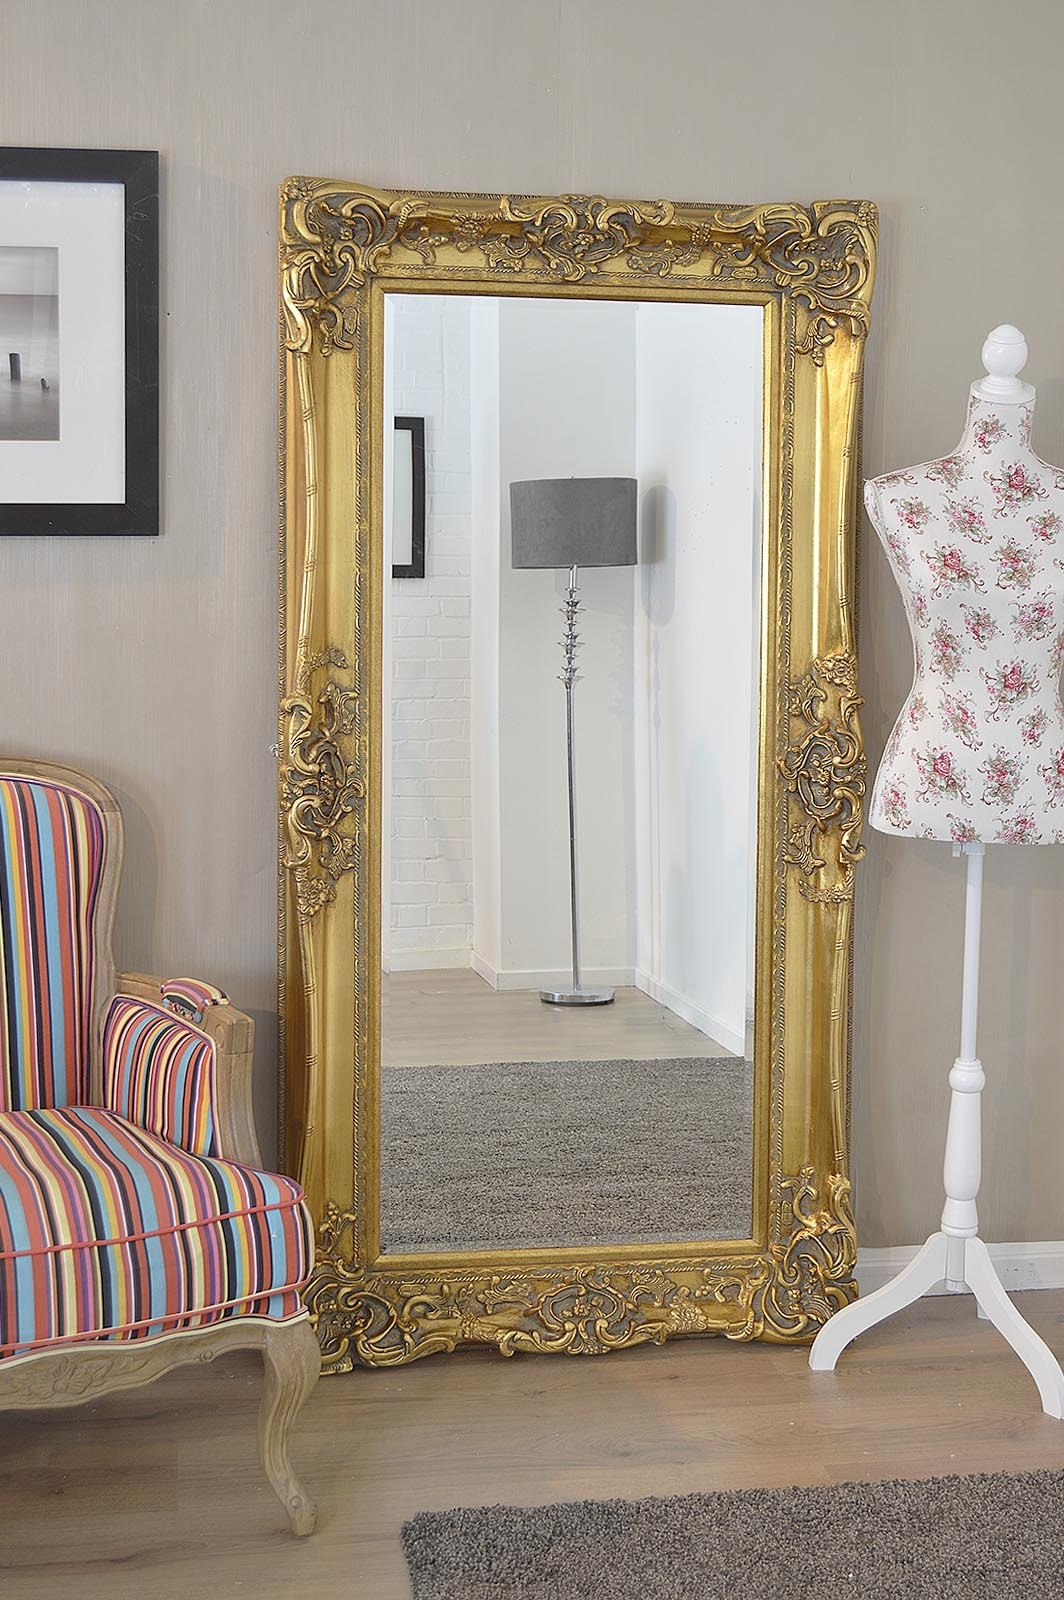 Large Frame Gold Antique Shab Chic Ornate Wall Mirror 6ft X 3ft With Regard To Antique Ornate Mirror (Image 7 of 15)